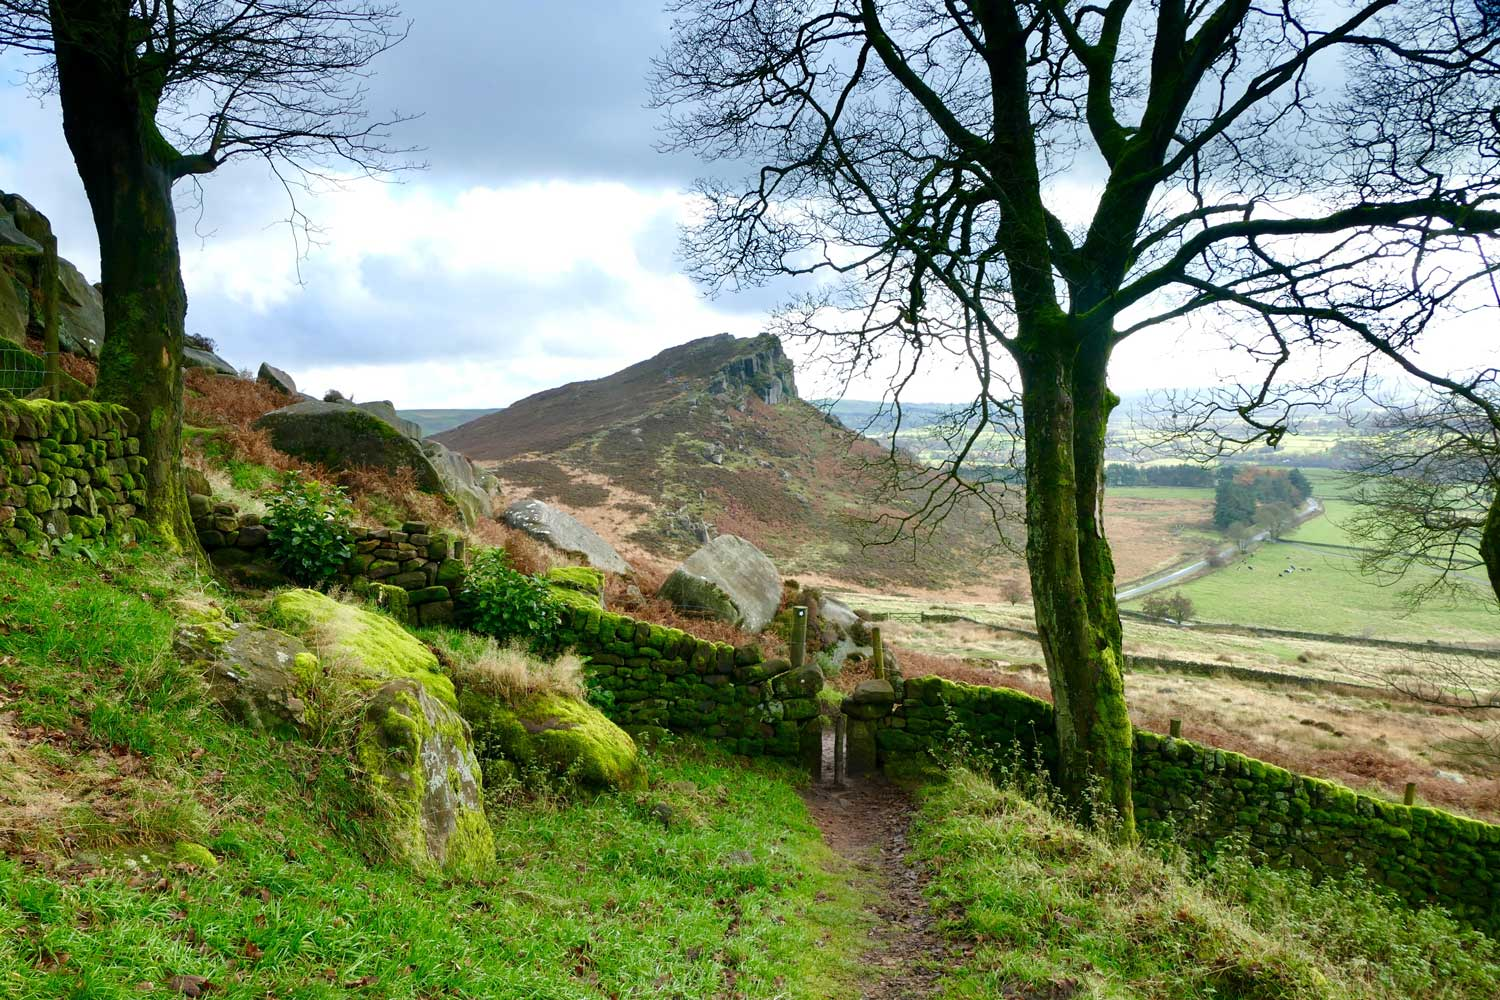 Worn narrow path through gates and over grassy fields of Peak District, England